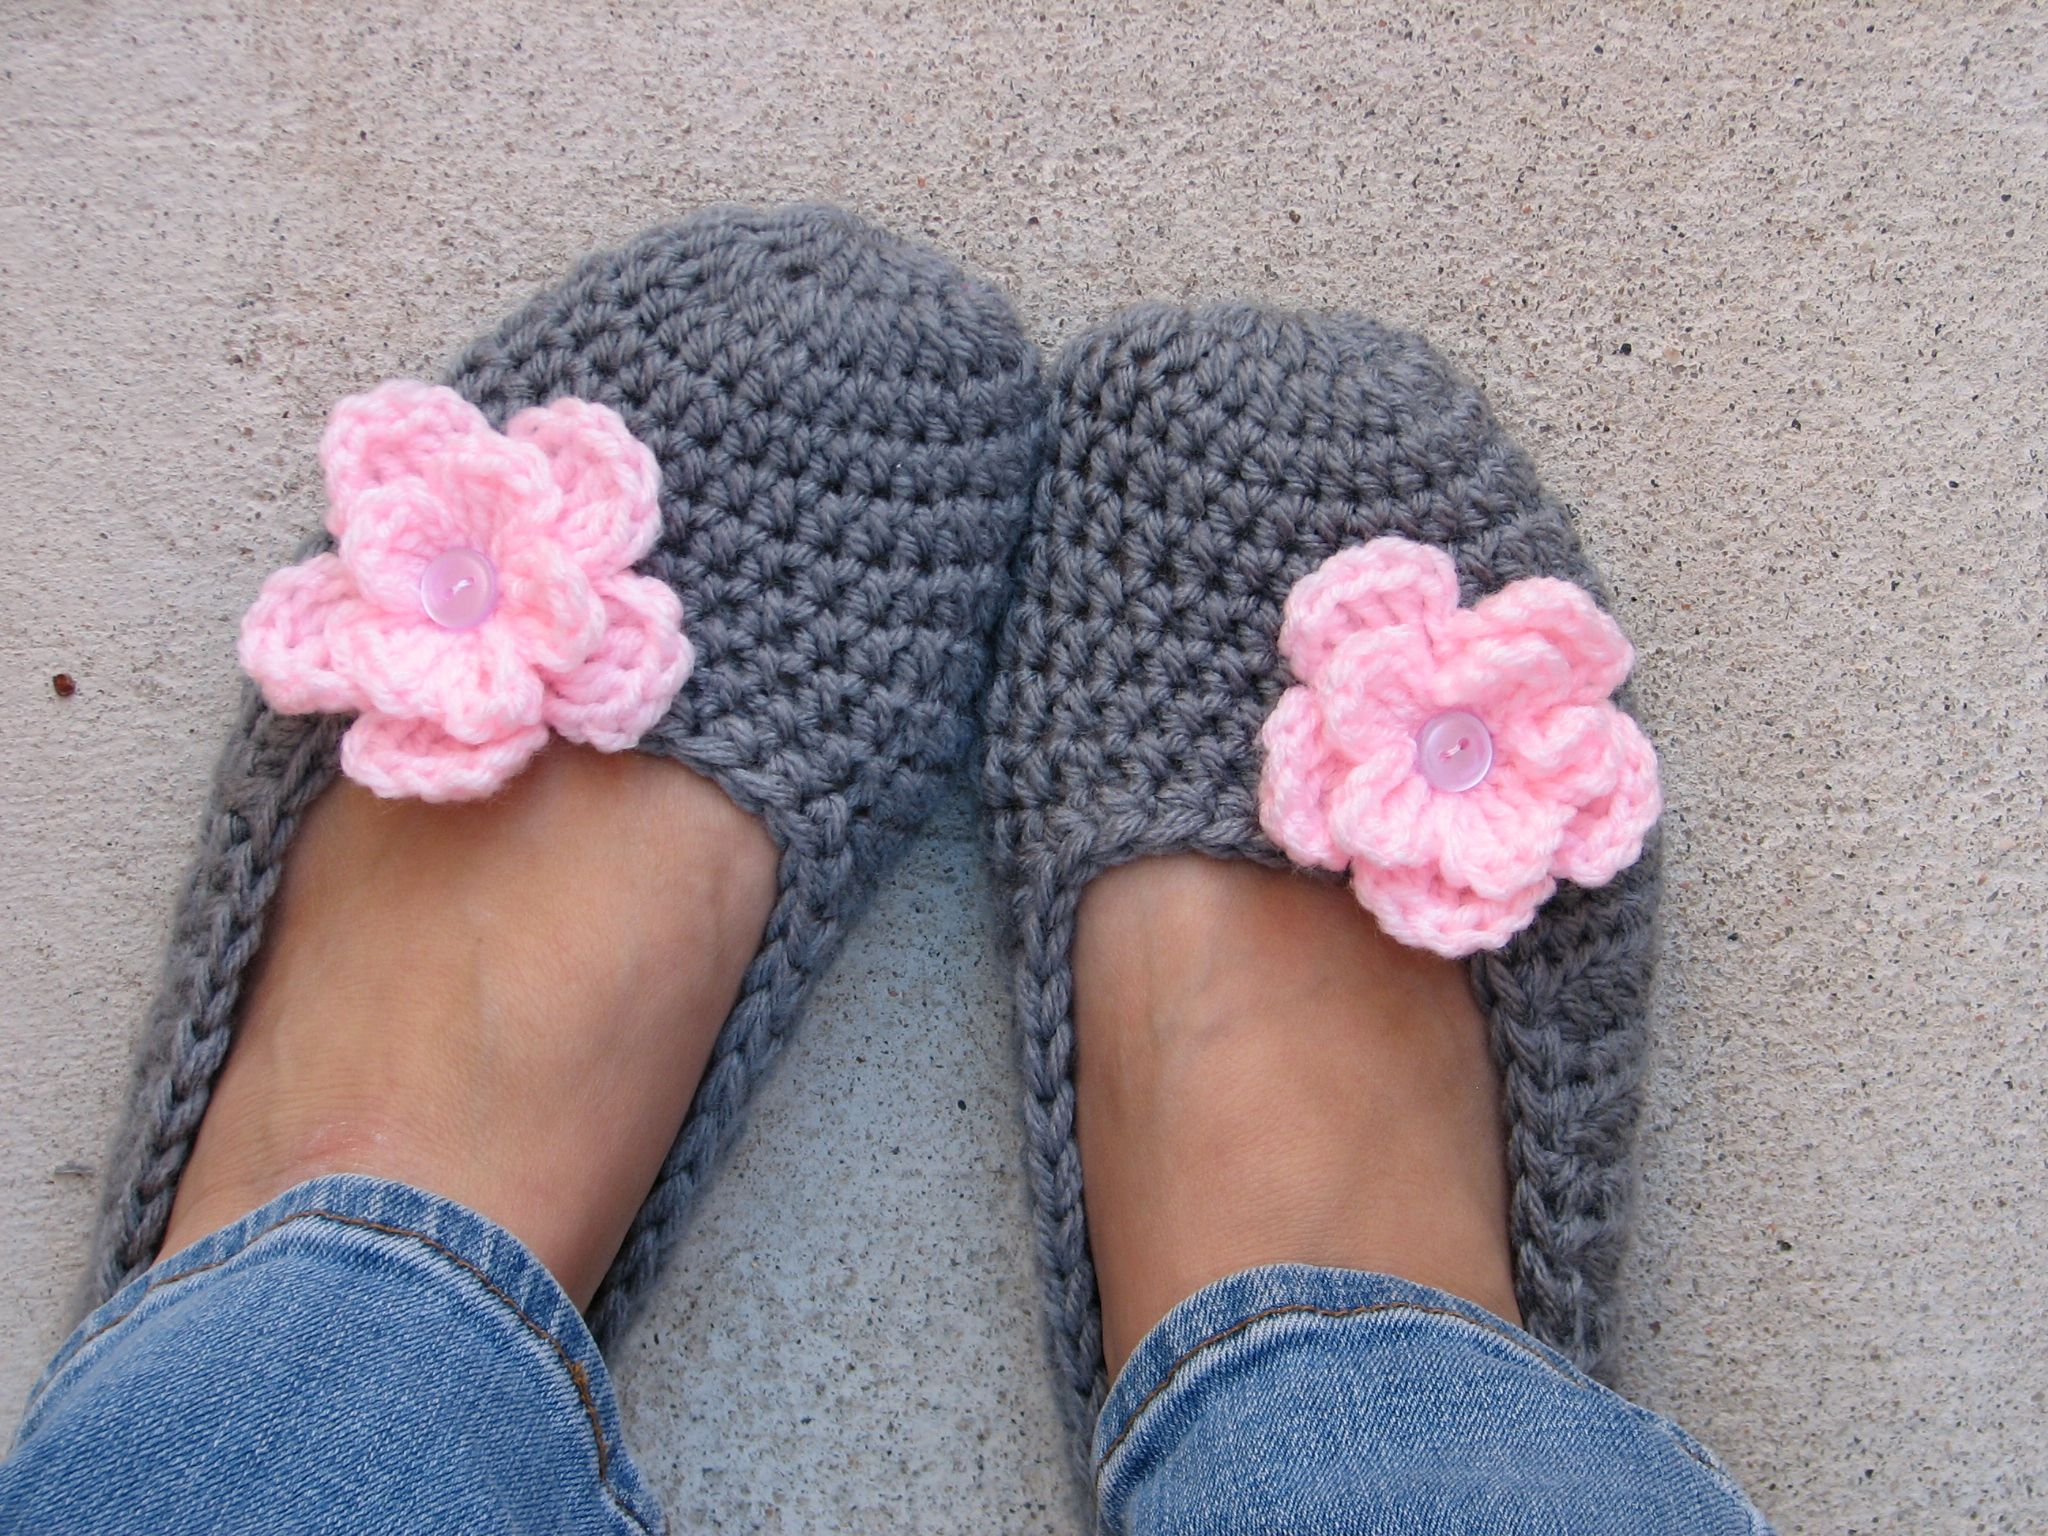 Easy beginner crochet patterns crochet pattern pdfeasy great you can make your own slippers mikey adult slippers crochet pattern pdfeasy great for beginners shoes crochet pattern slippers pattern no dt1010fo